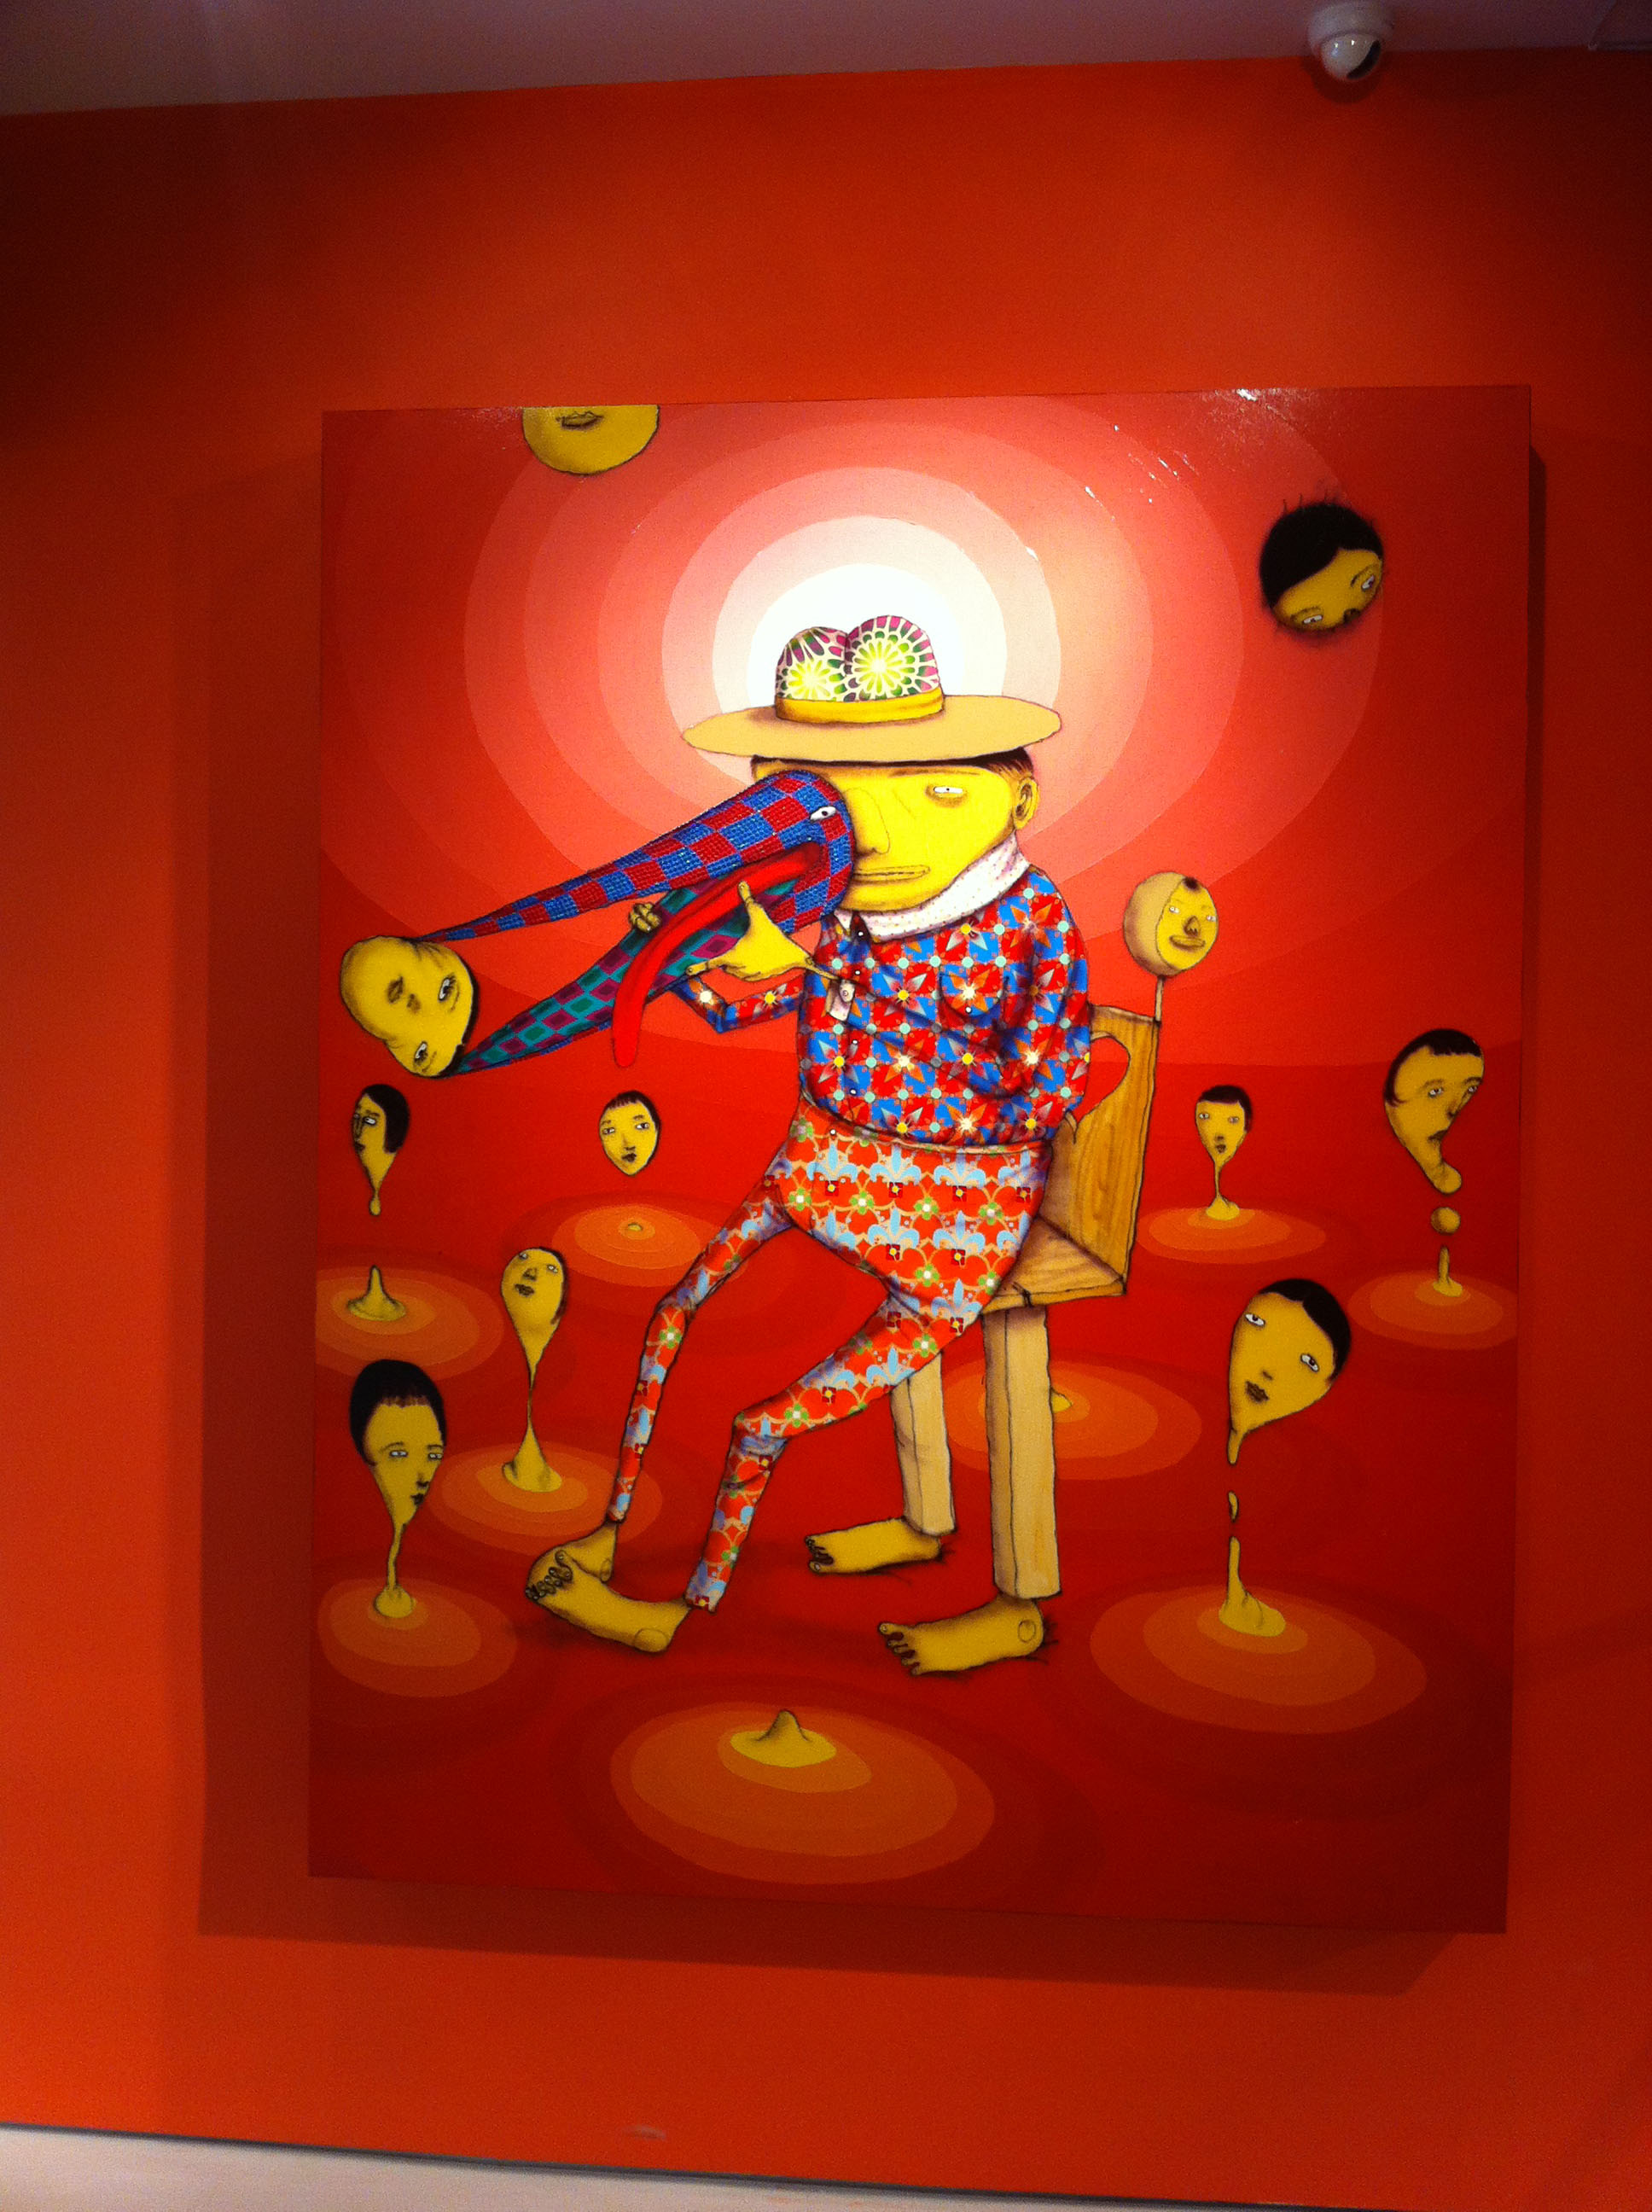 Os Gemeos, Miss You, 2011 - Prism Gallery, Los Angeles